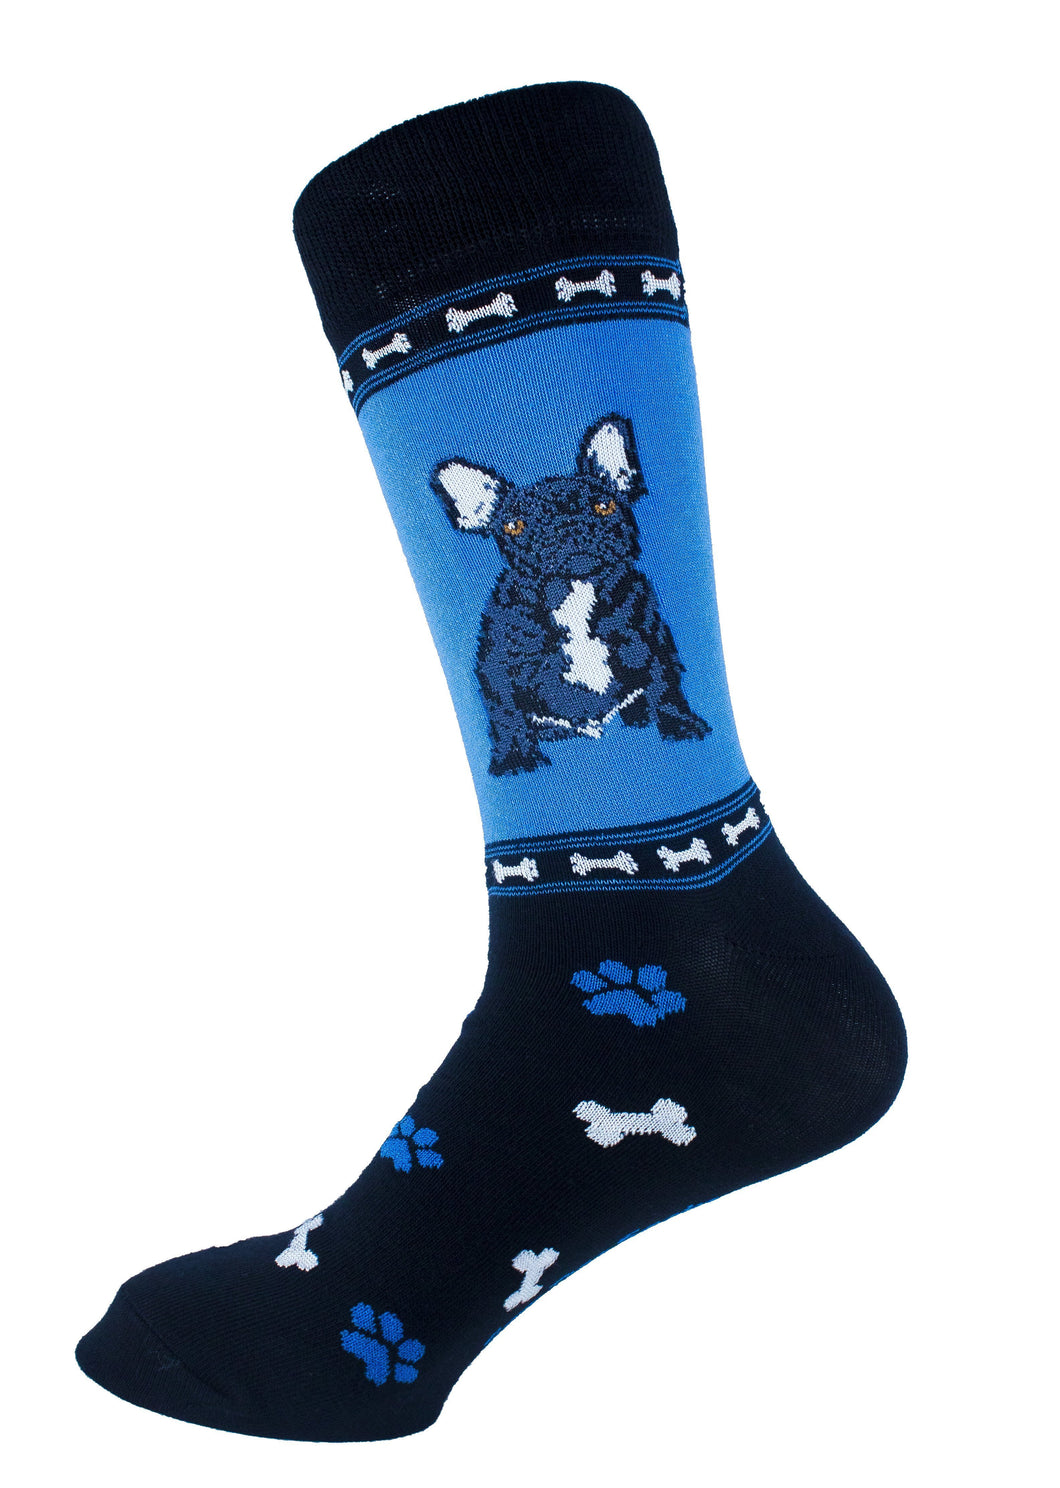 French Bulldog Black Dog Socks Mens Signature